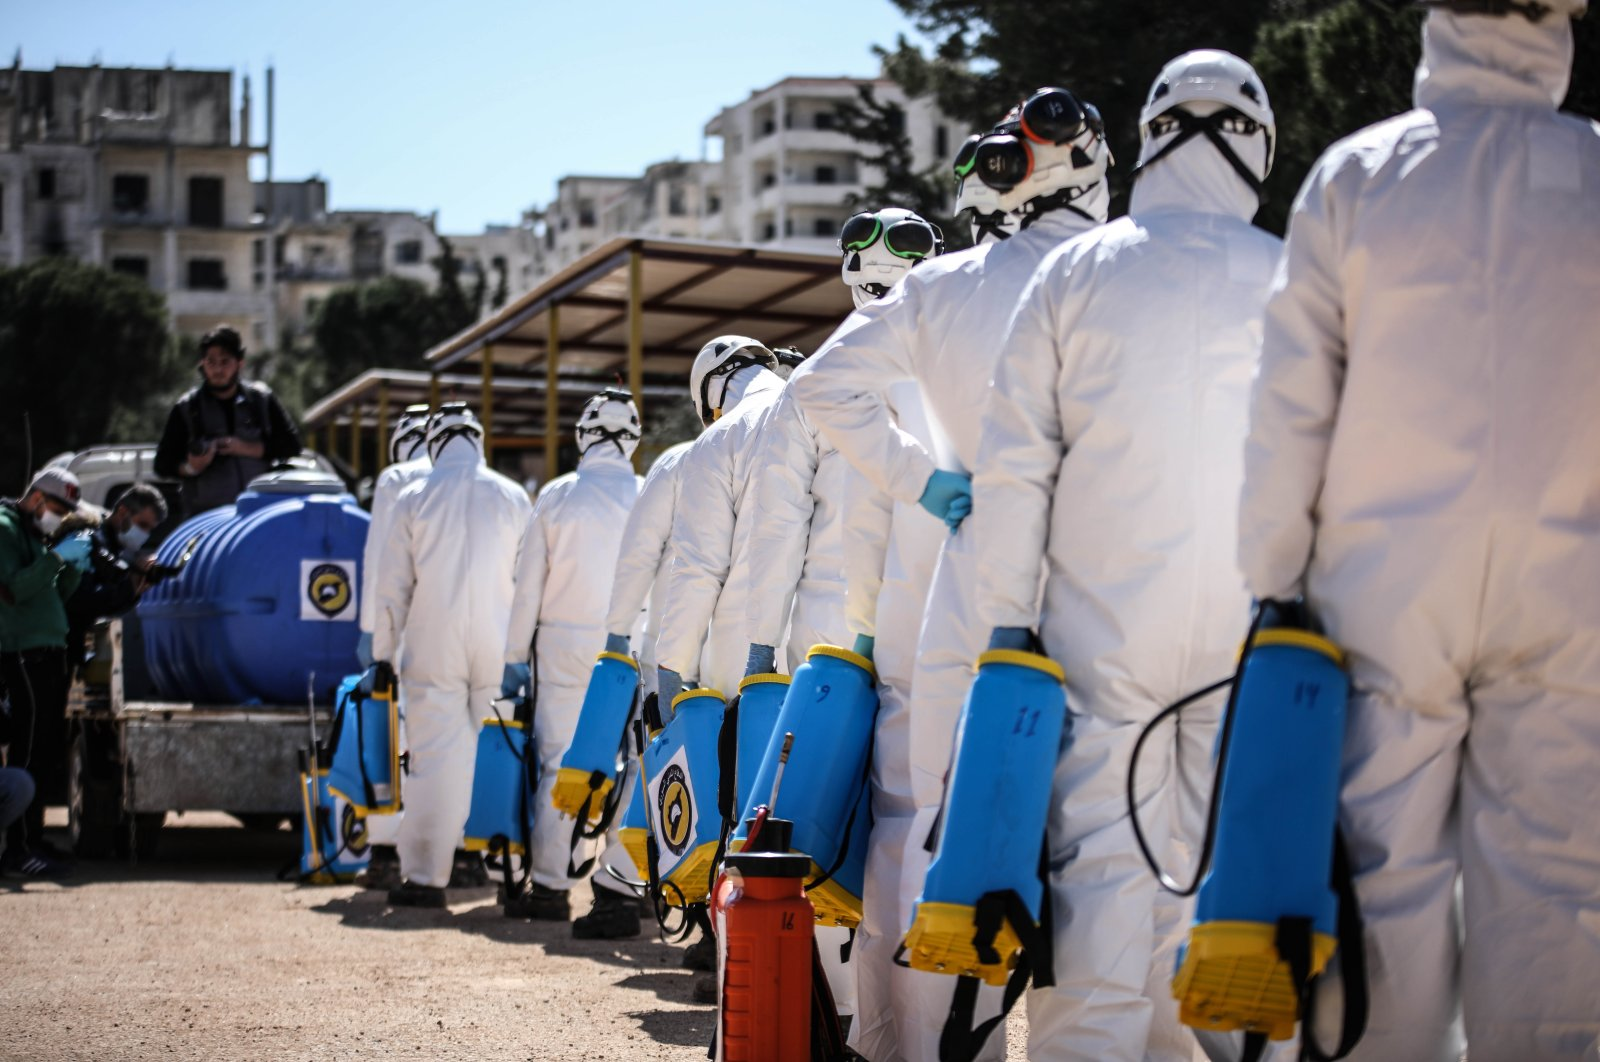 The White Helmets civil defense group is striving to conduct disinfectant works in Syria's Idlib province, March 23, 2020. (AA Photo)